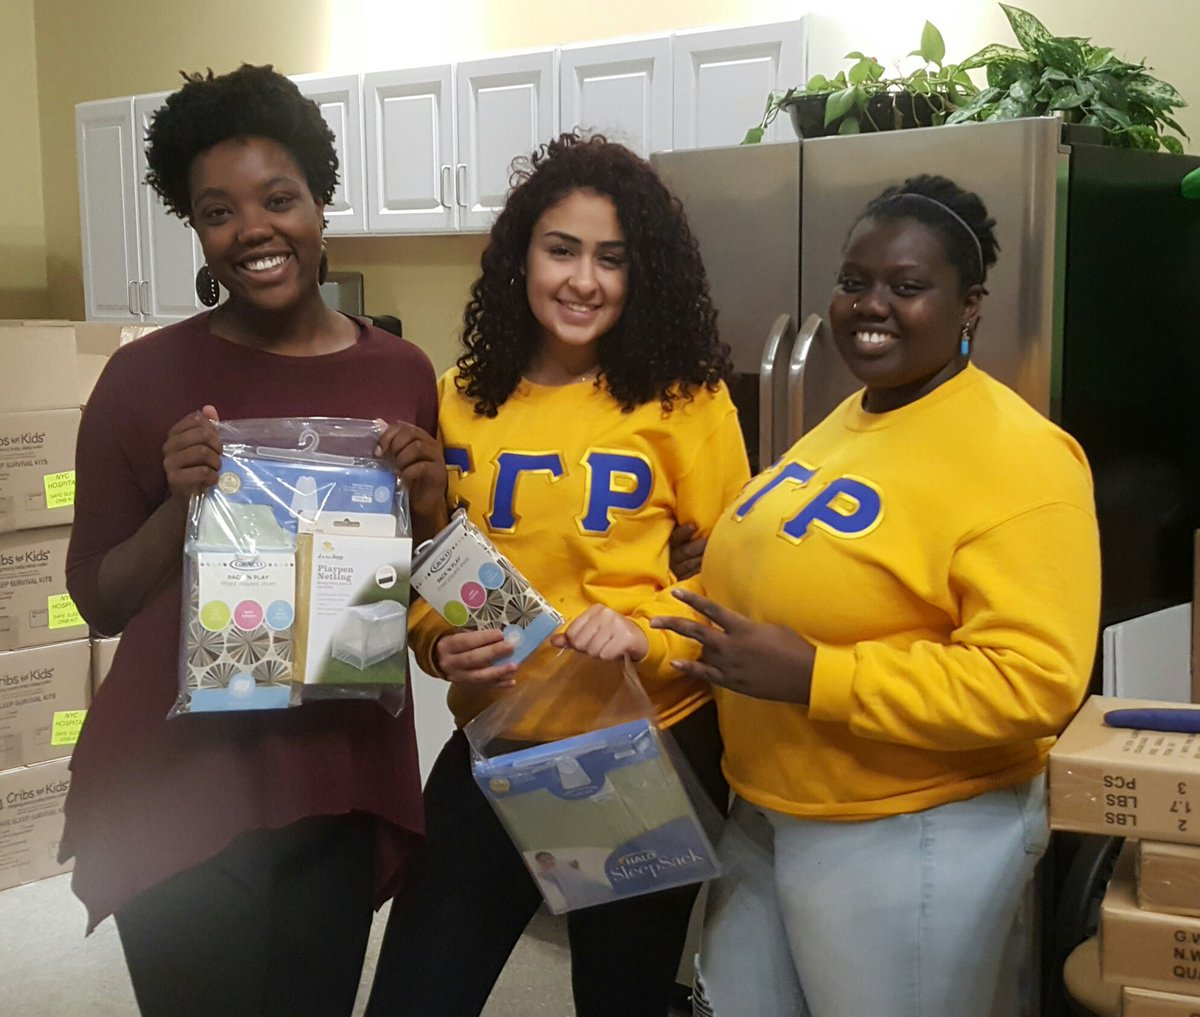 RT @PittStudents: Ladies from @PittSGRhos  helping out in the community for #MLKDAY #PittCares https://t.co/NMznHHEUPN